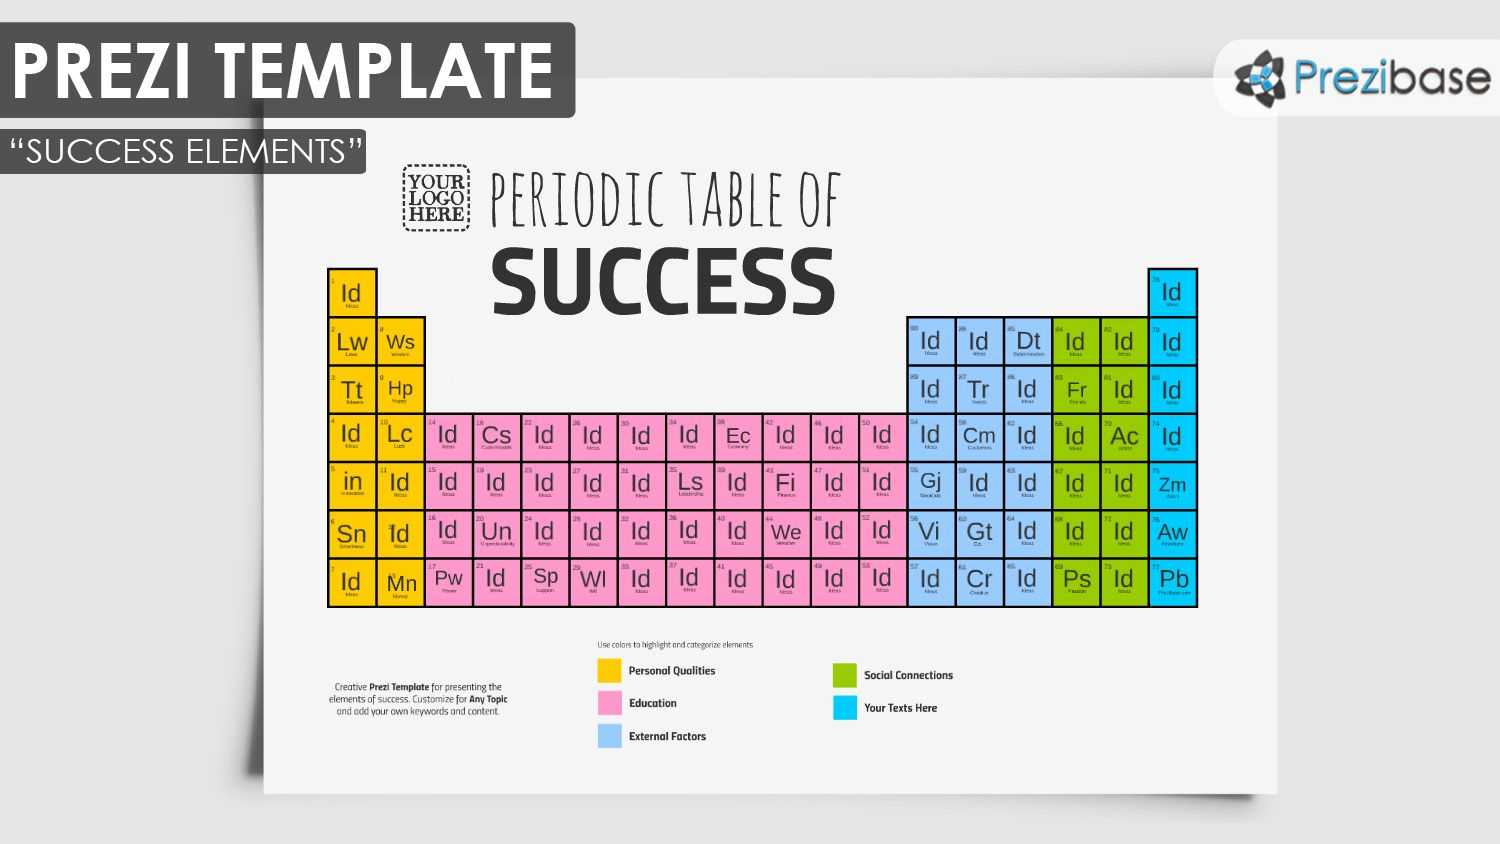 Success elements periodic table of ideas prezi template free success elements periodic table of ideas prezi template free creative gamestrikefo Image collections